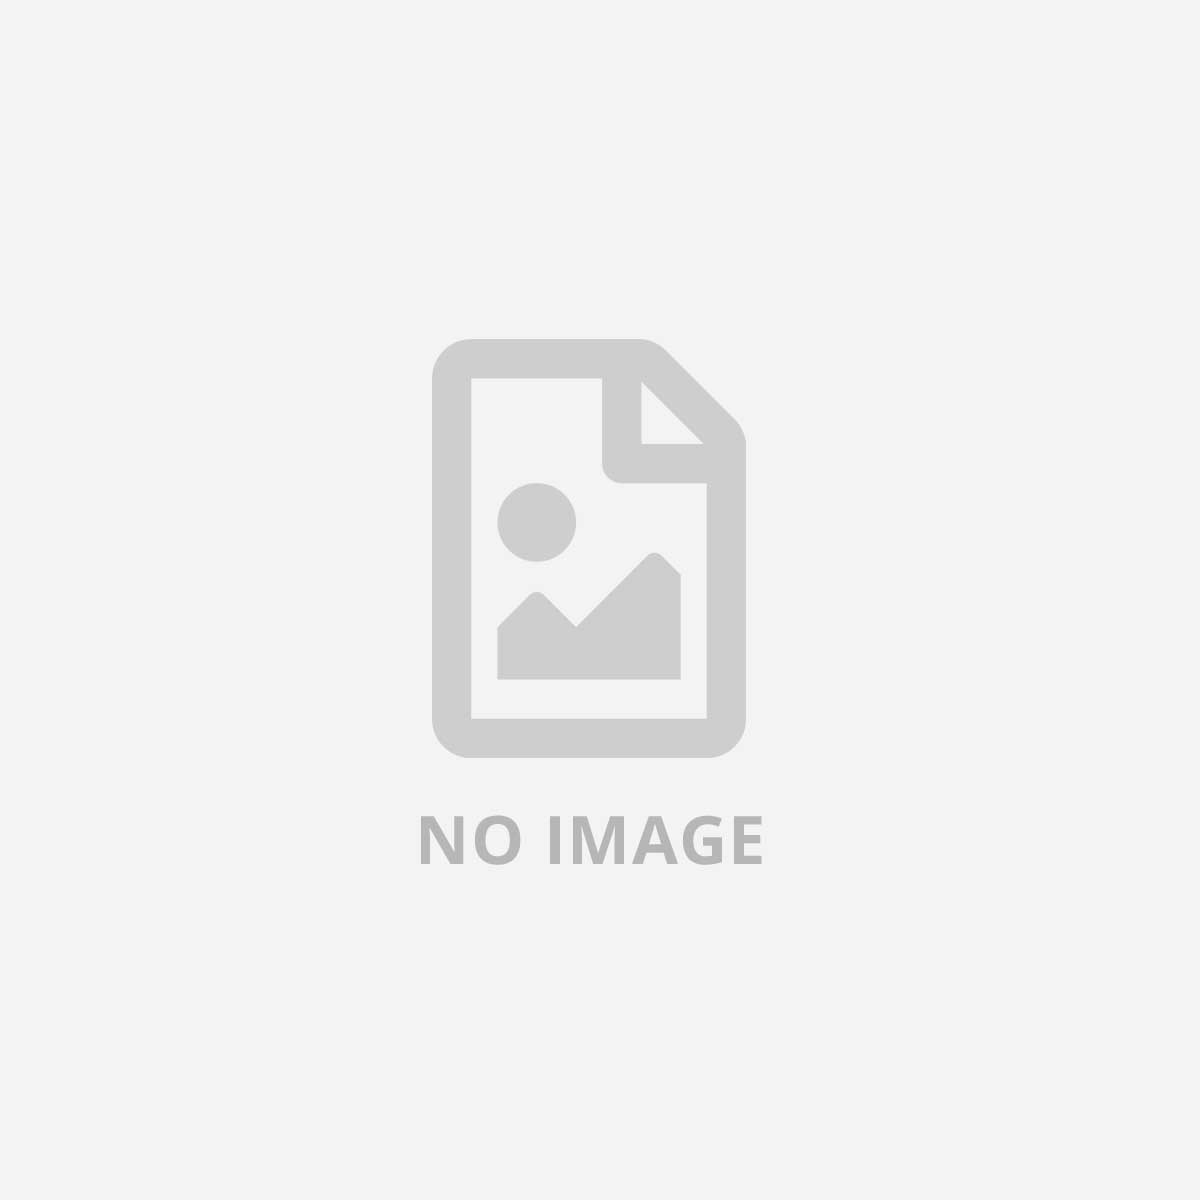 TOSHIBA HDD 3 5P 1000GB 64MB 7200RPM